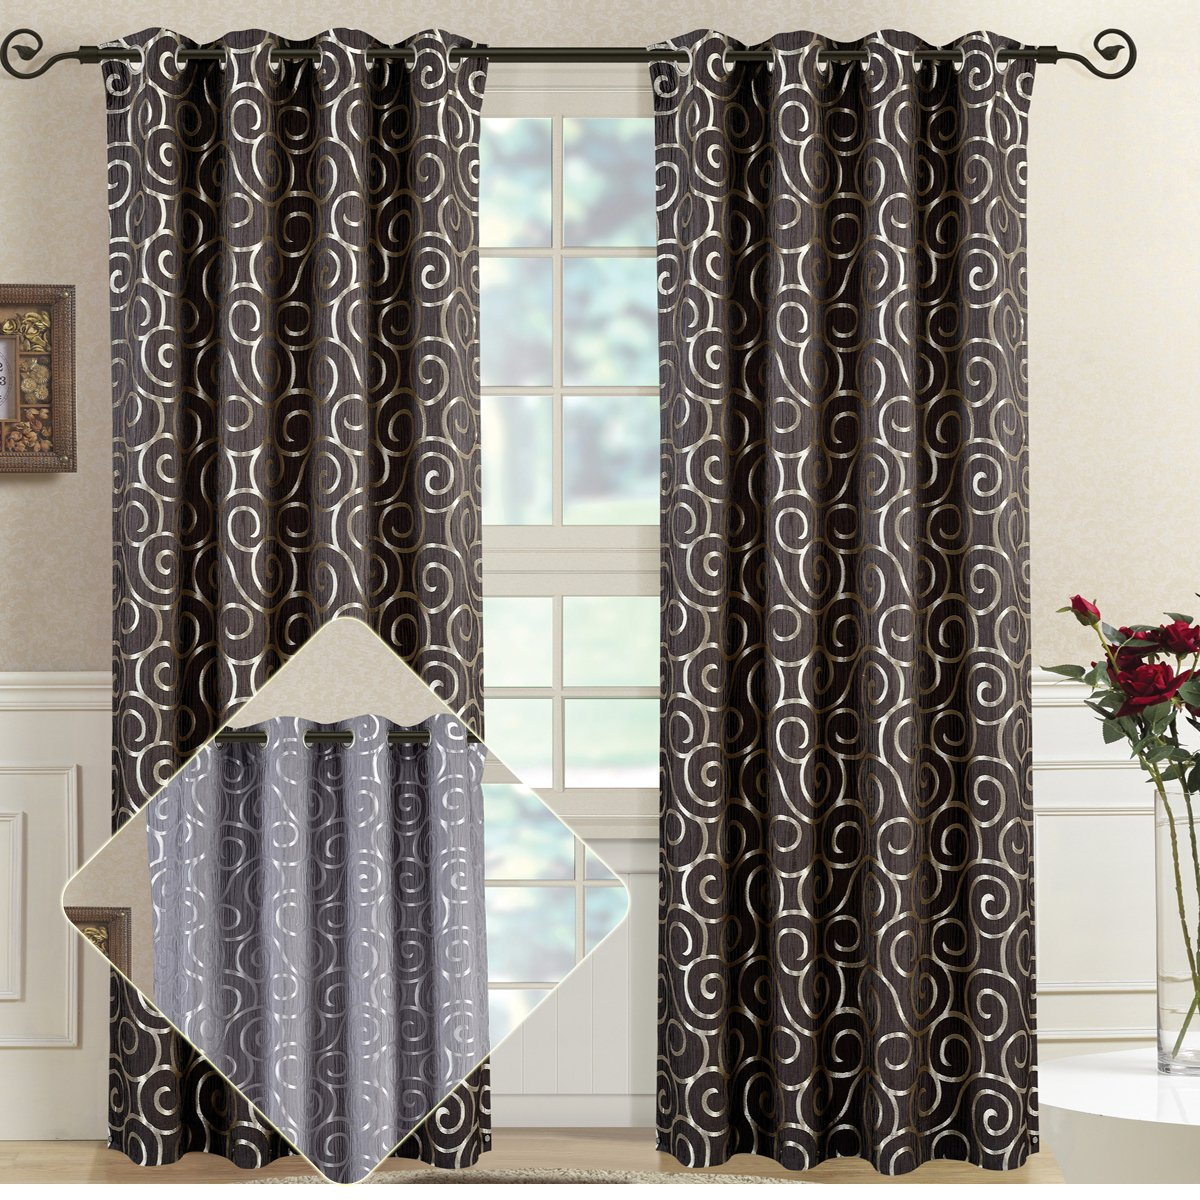 Tuscany Chocolate Top Grommet Abstract Jacquard Textured Window Curtain Panel, Set of 2 Panels, 104x96 Inches Pair, by Royal Hotel